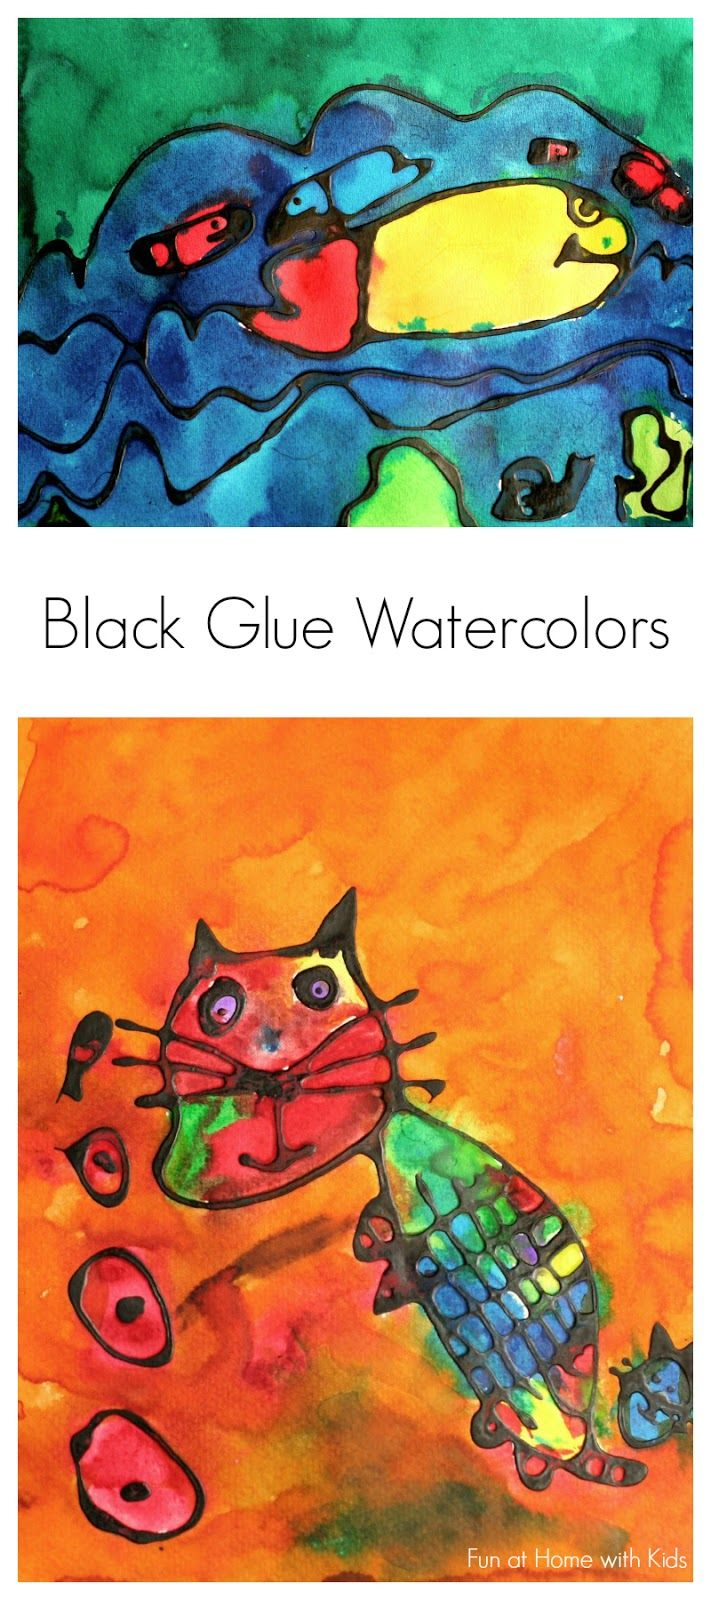 Black Glue Watercolor Painting Diy Craft Art Activities